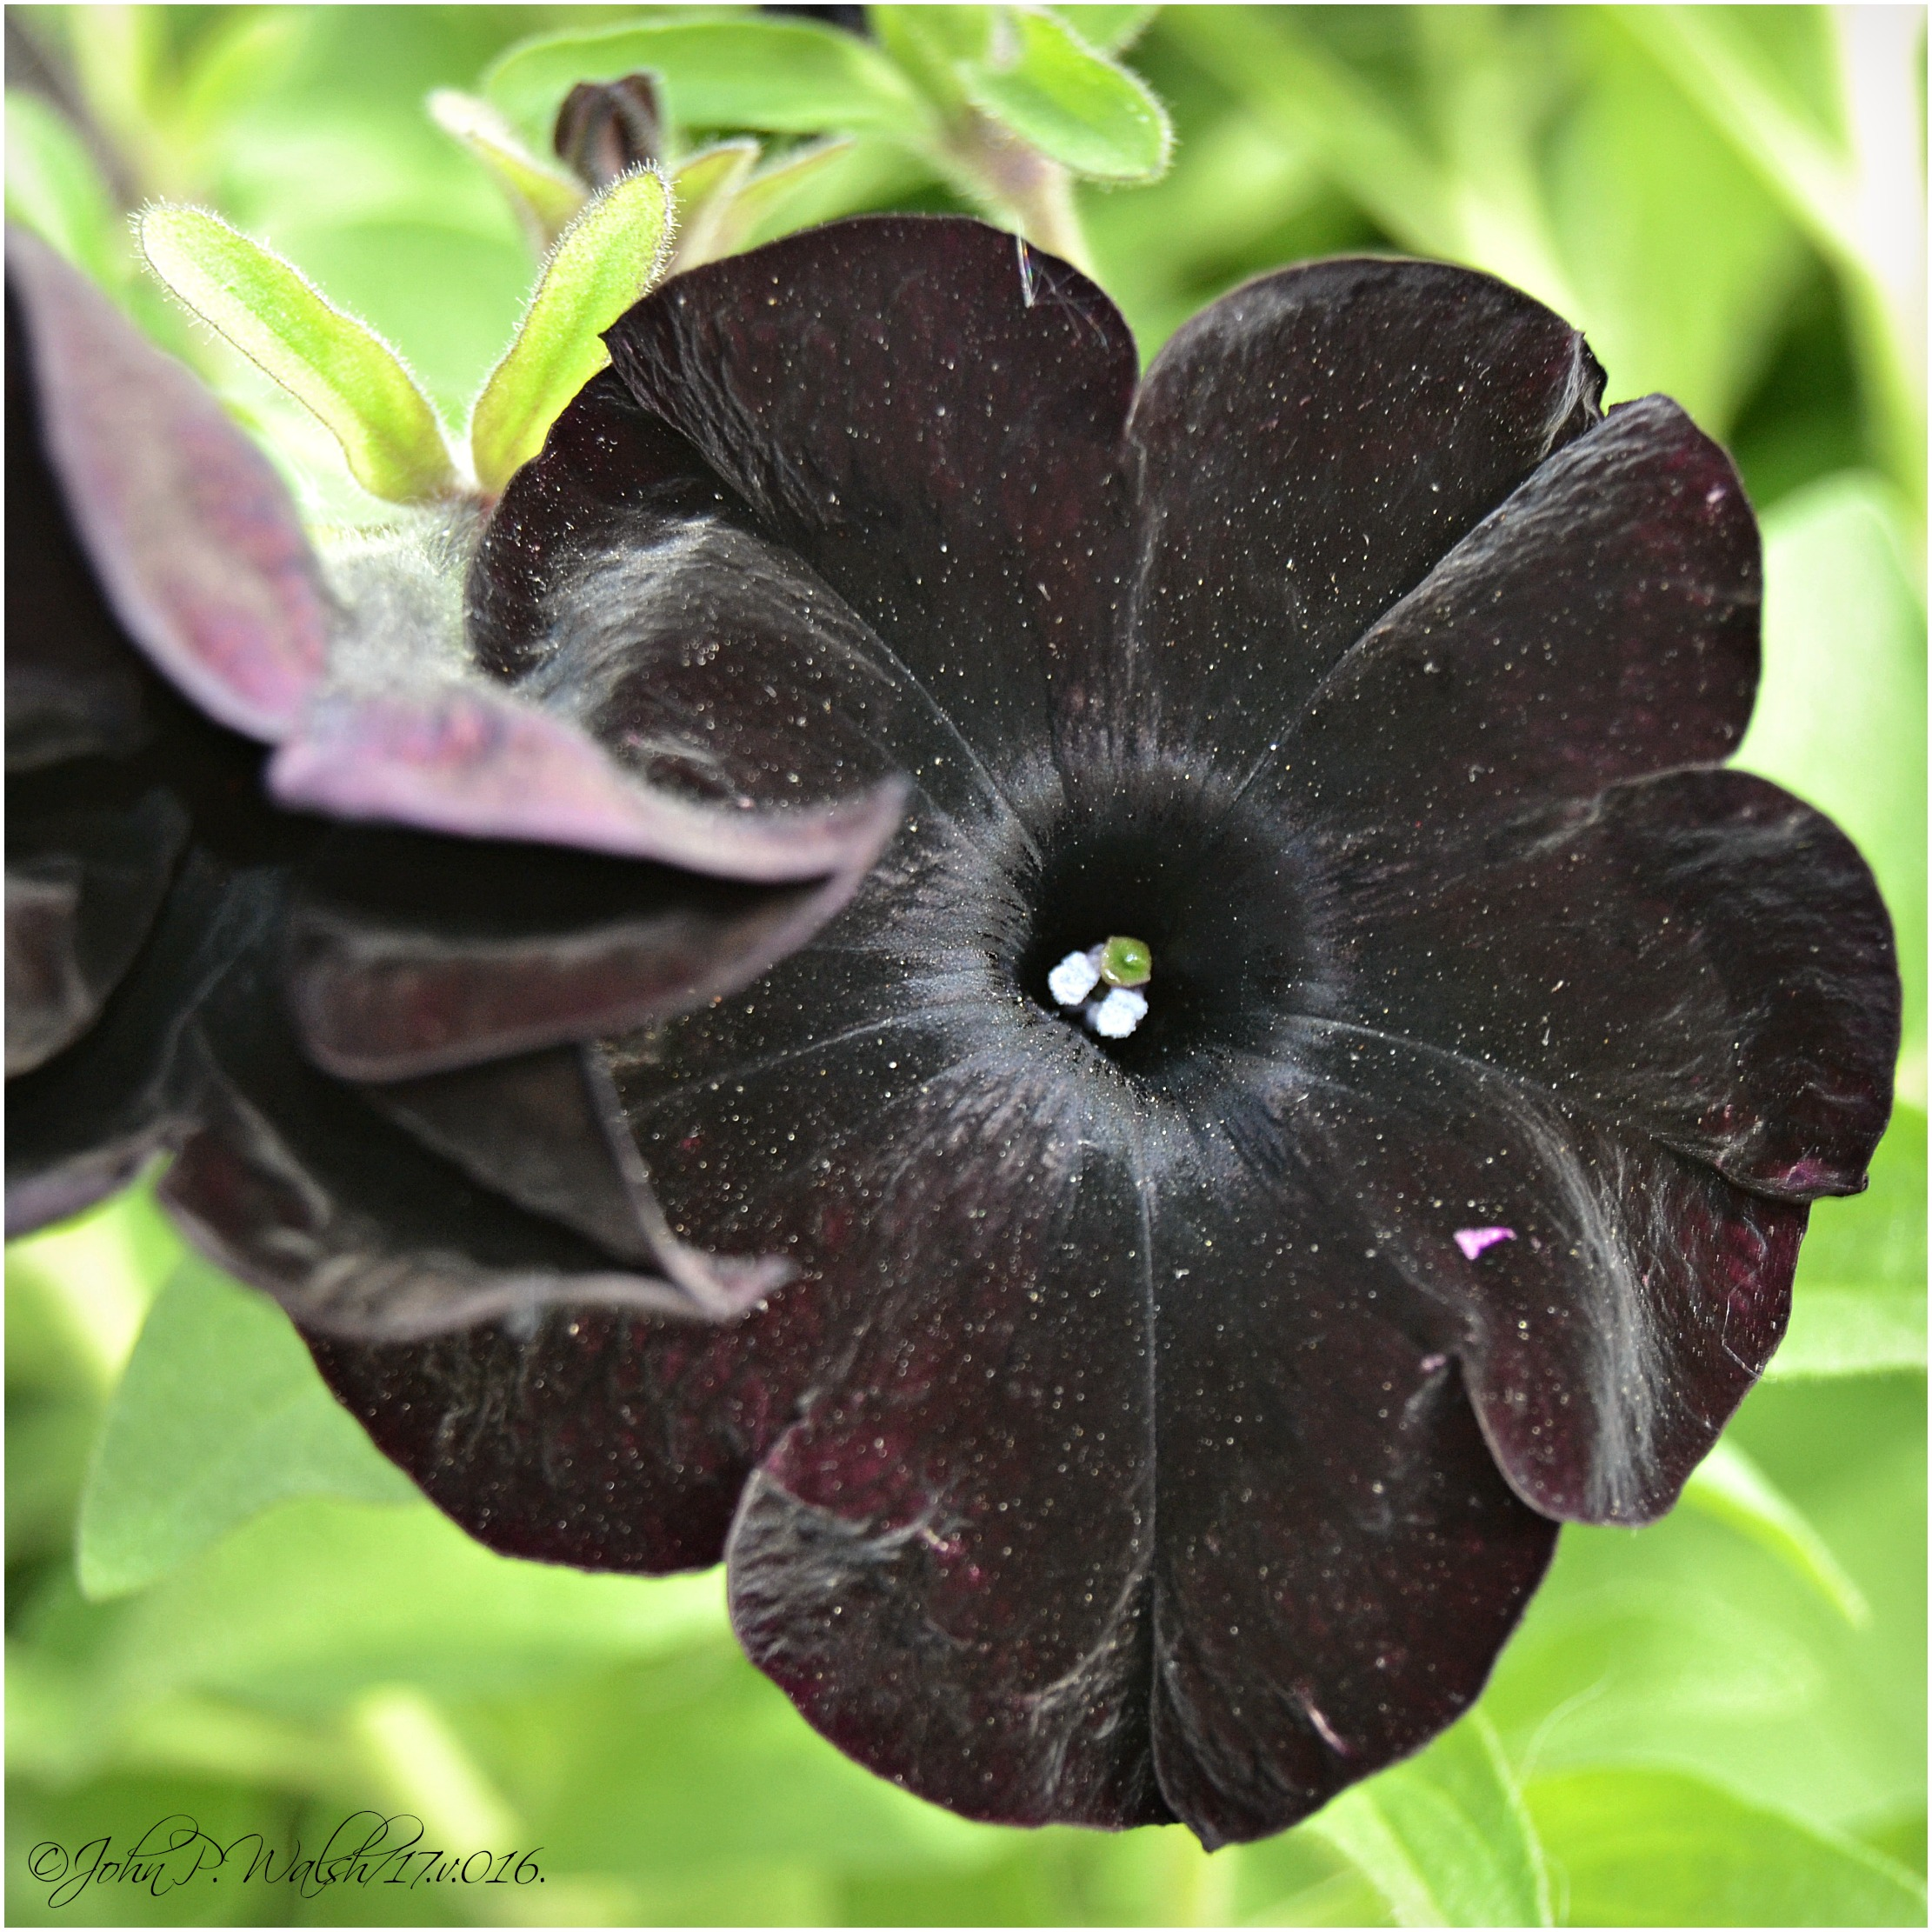 black magic petunia 5.17.16